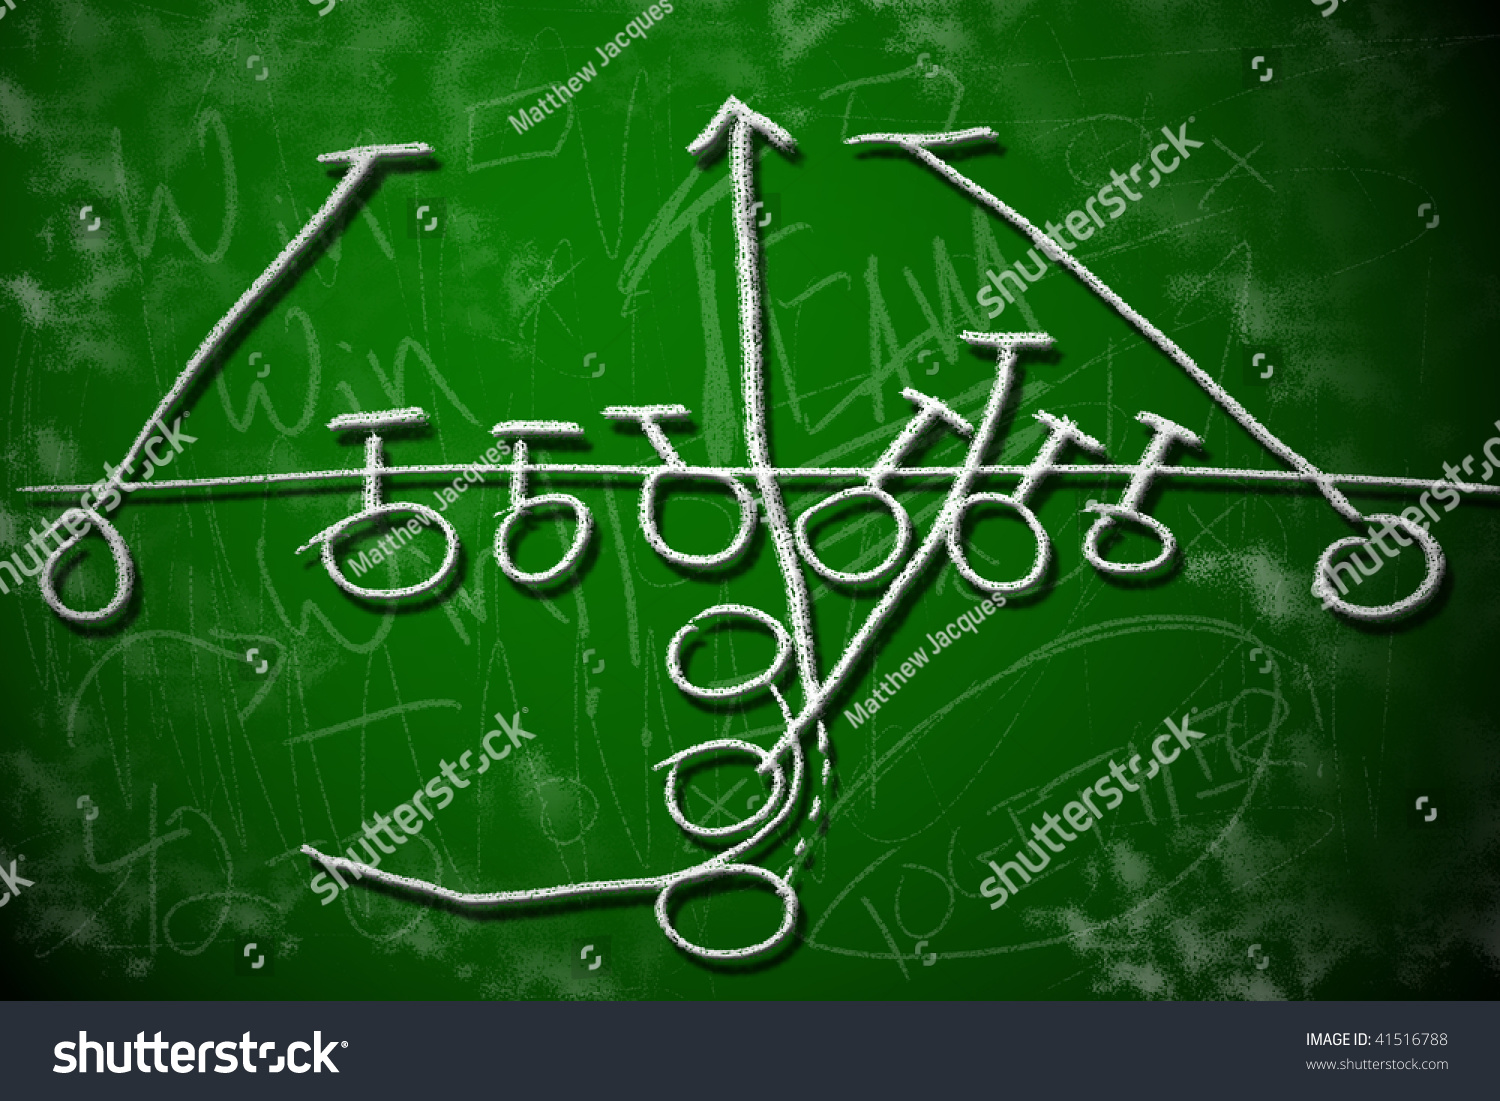 Football running play strategy on green stock illustration football running play strategy on green chalkboard playbook diagram concept pooptronica Images